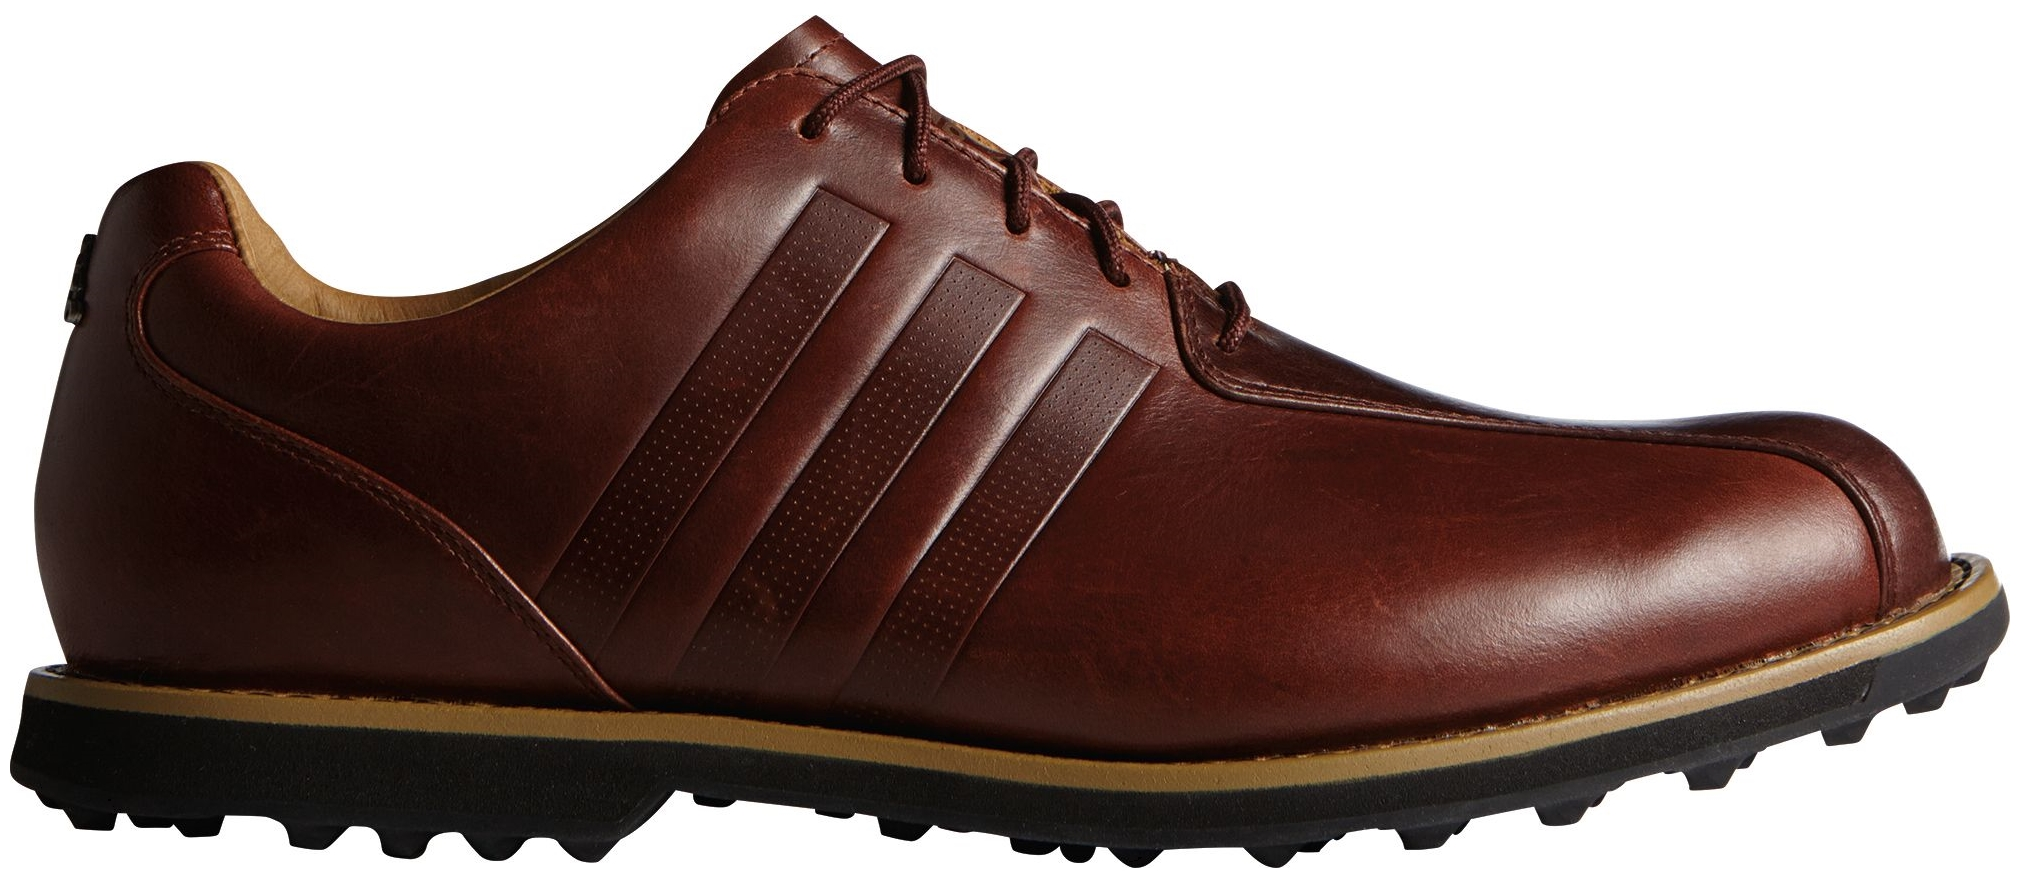 adidas adipure TC Golf Shoes by